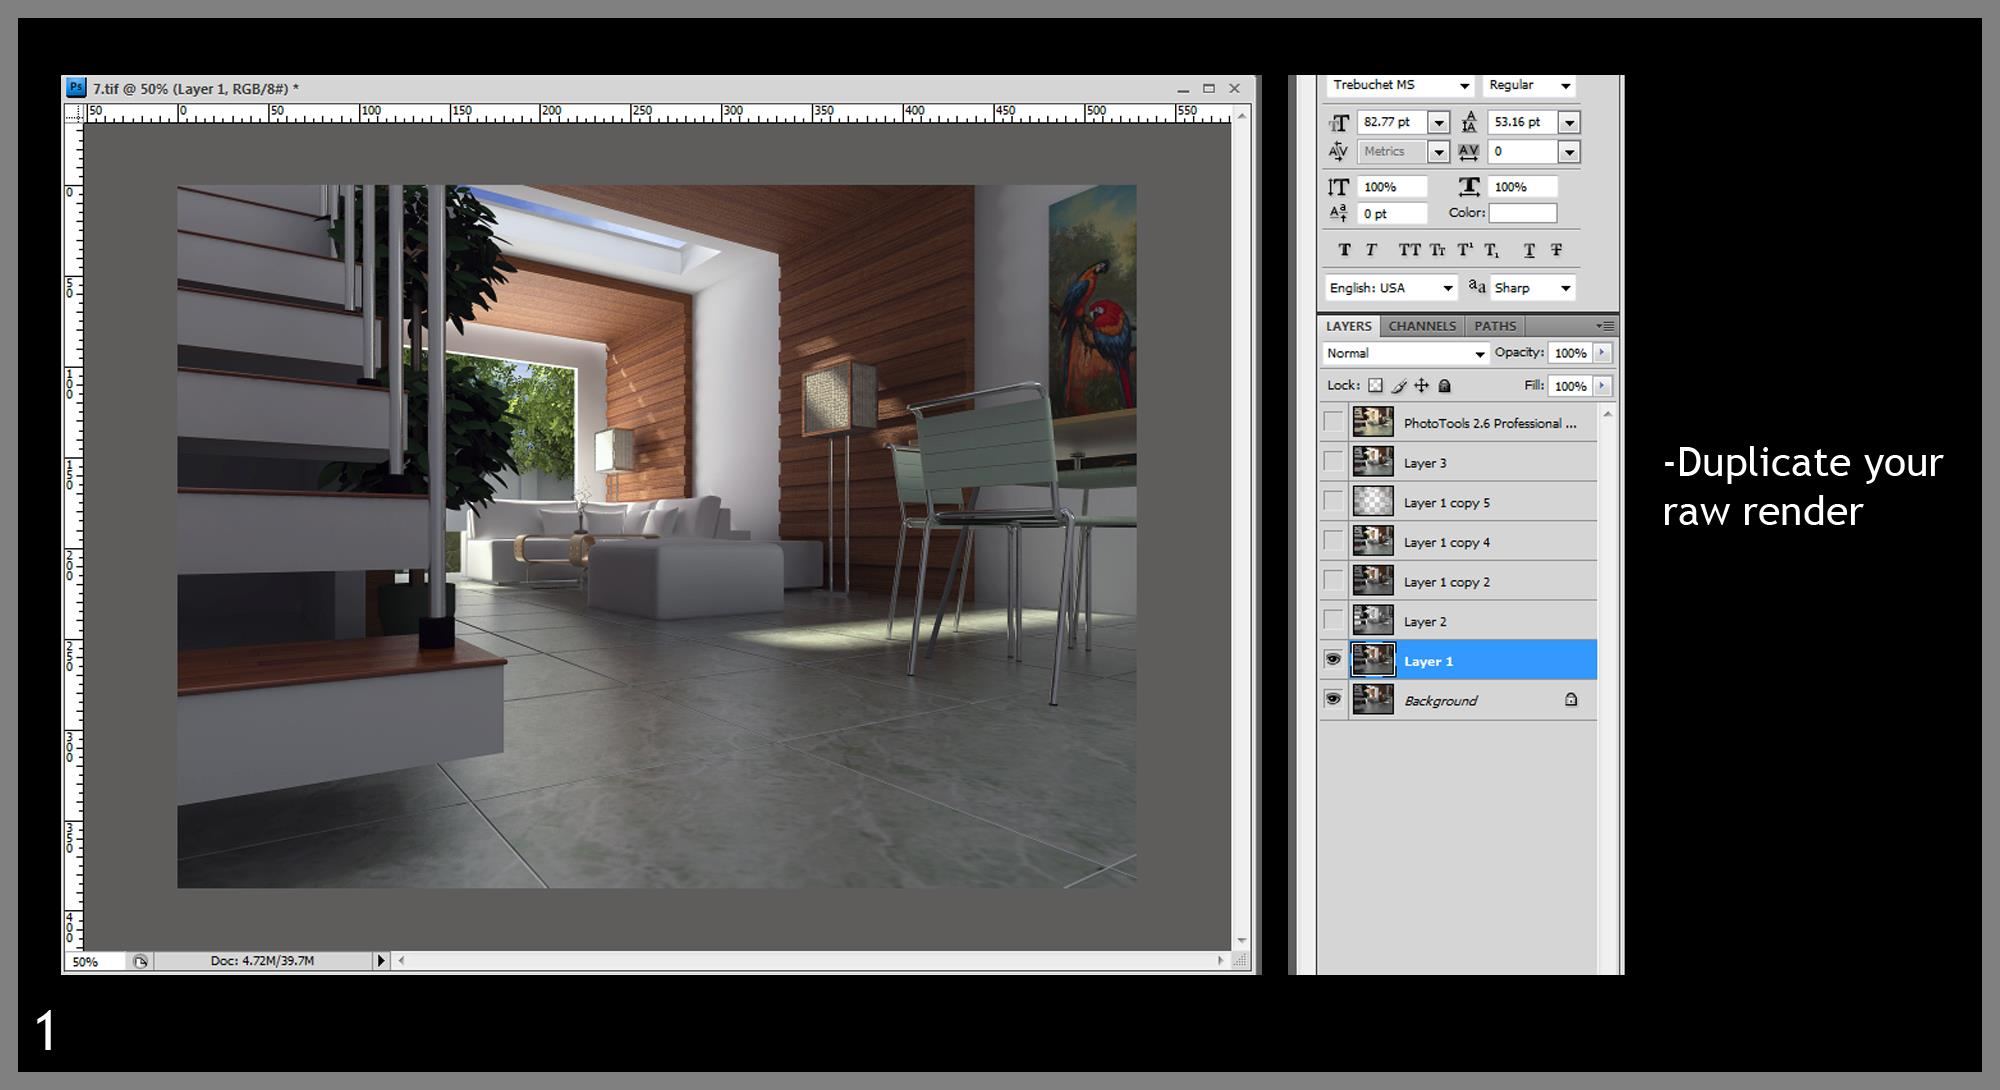 Post process tutorials render in sketchup and post process in post process tutorials render in sketchup and post process in photoshop baditri Images